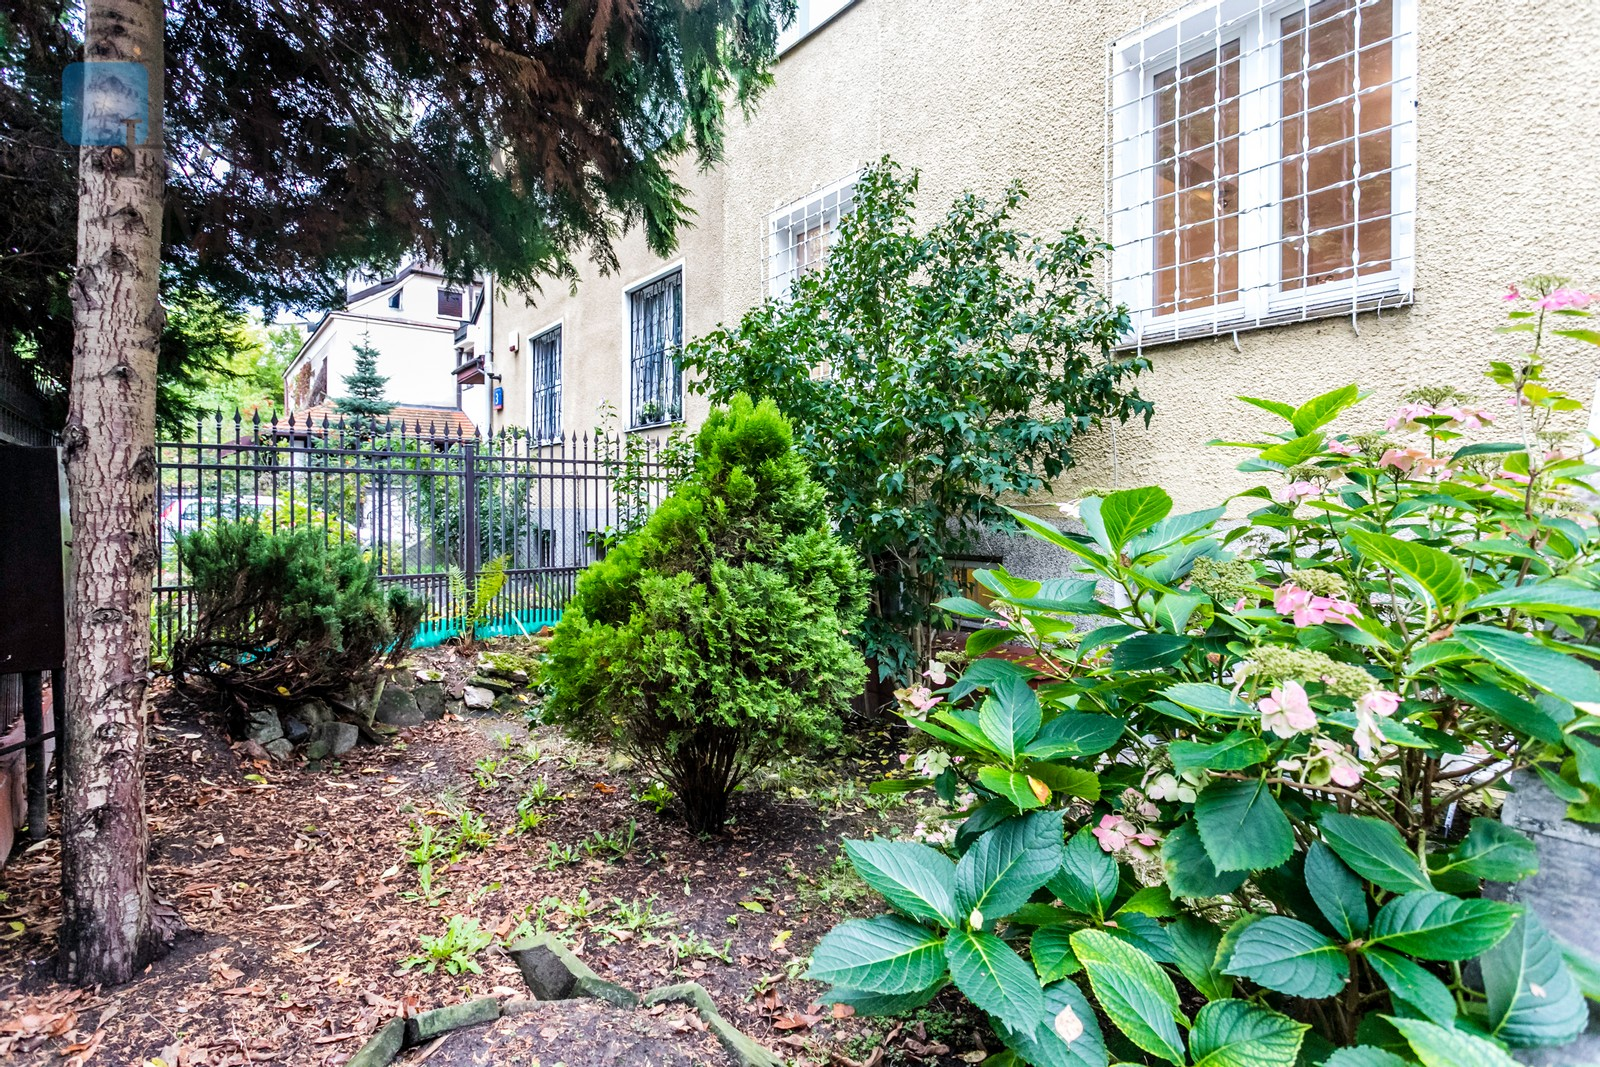 A semidetached house in a charming area at Saska Kępa Warsaw for rent